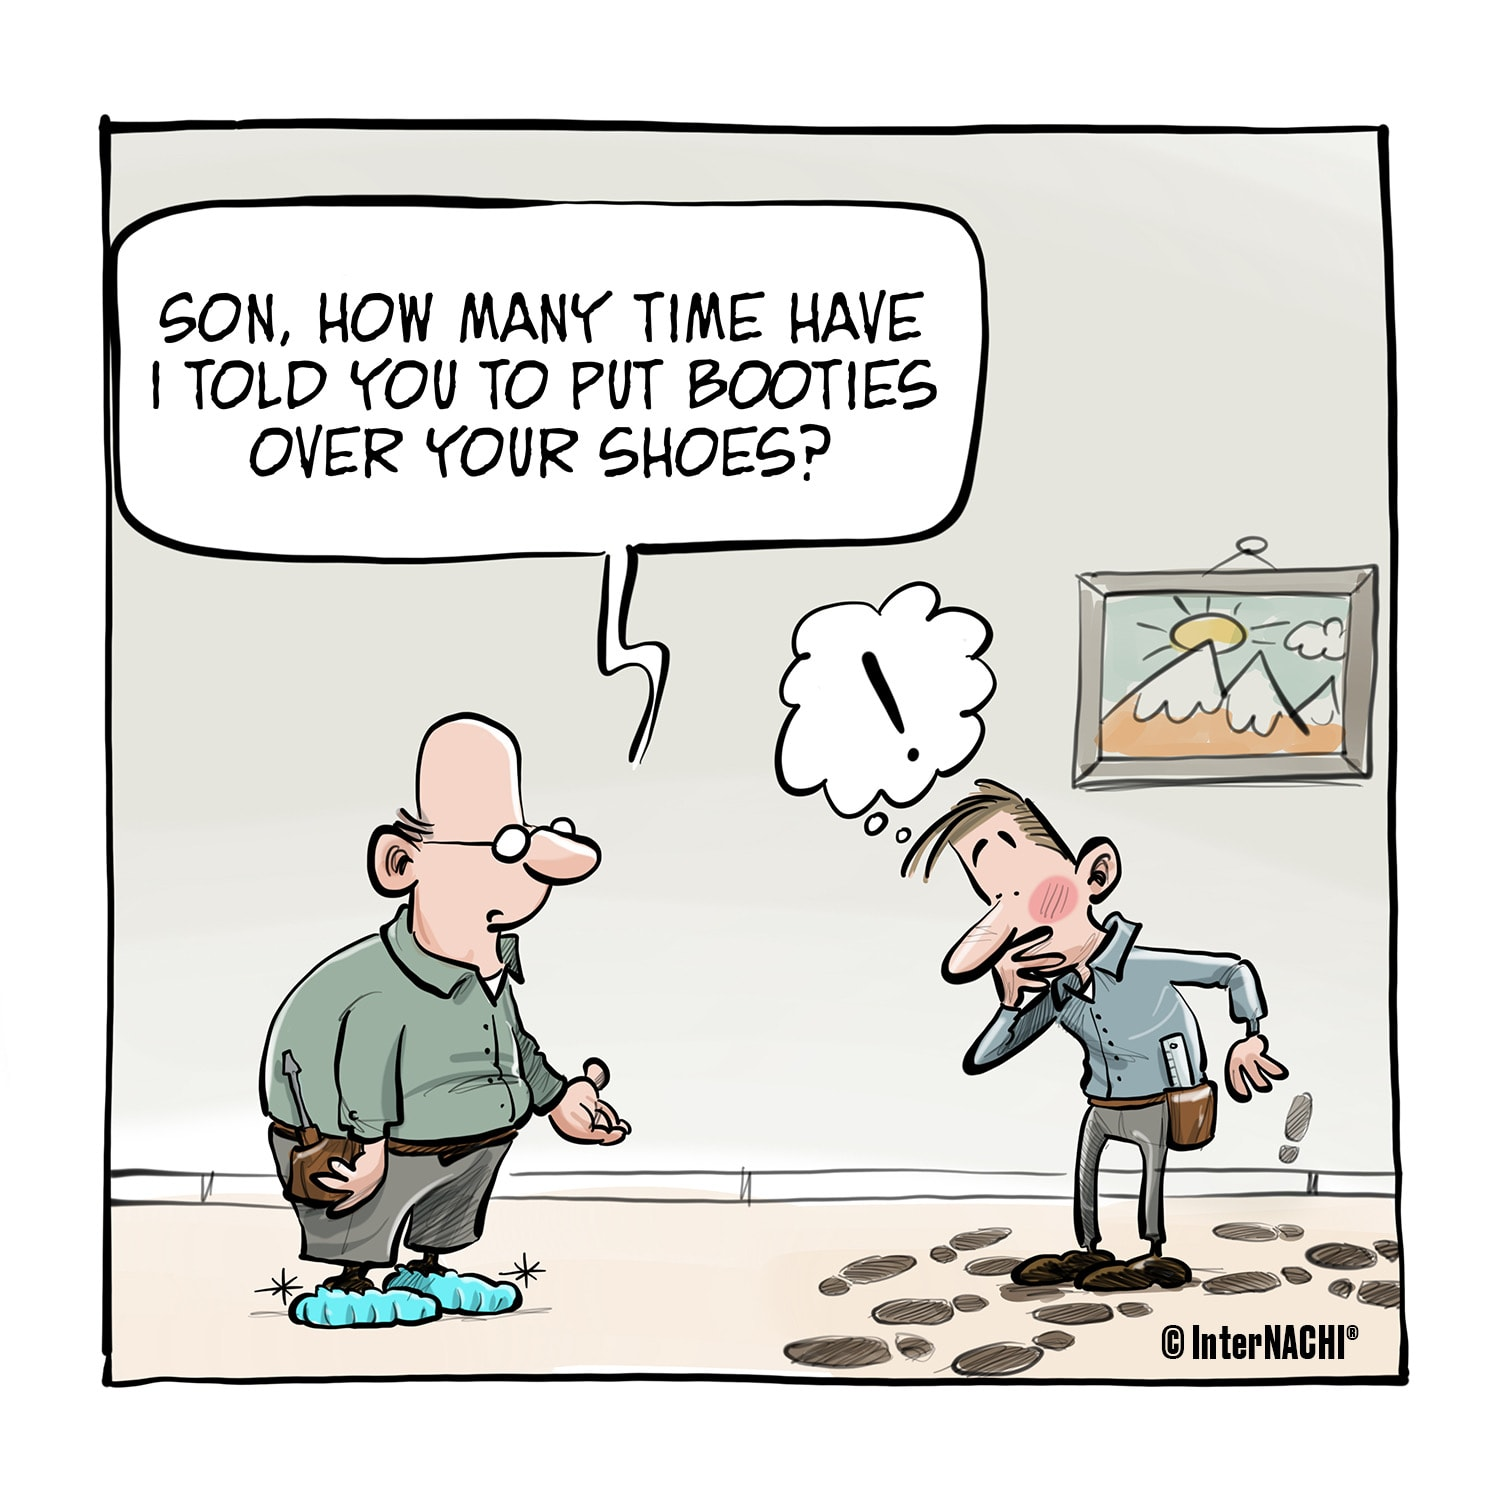 The Shoe Bootie Story Cartoon